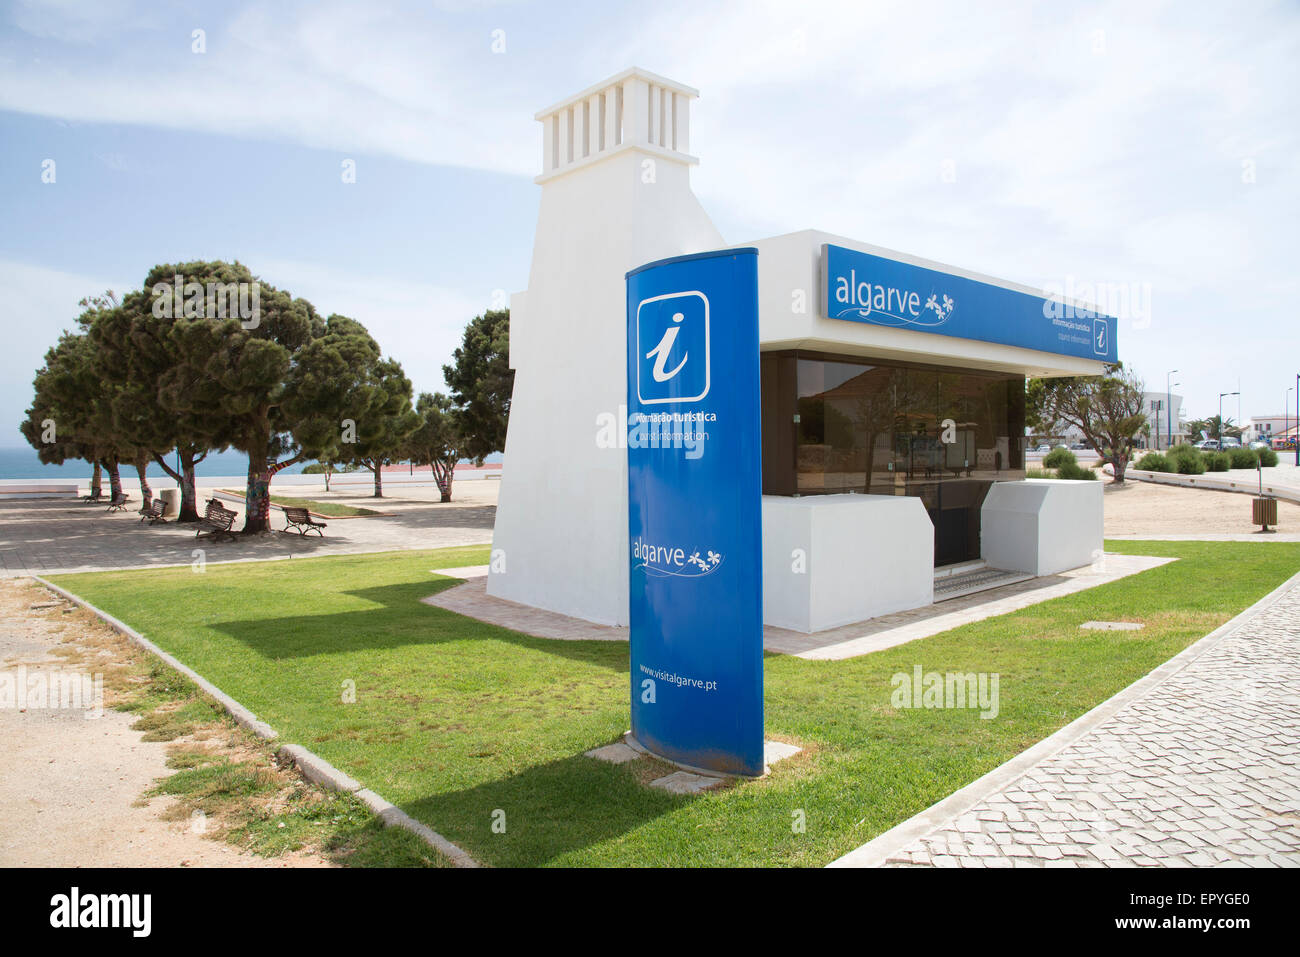 Tourist Office in the Portuguese town of Sagres in the Algarve region of Portugal - Stock Image